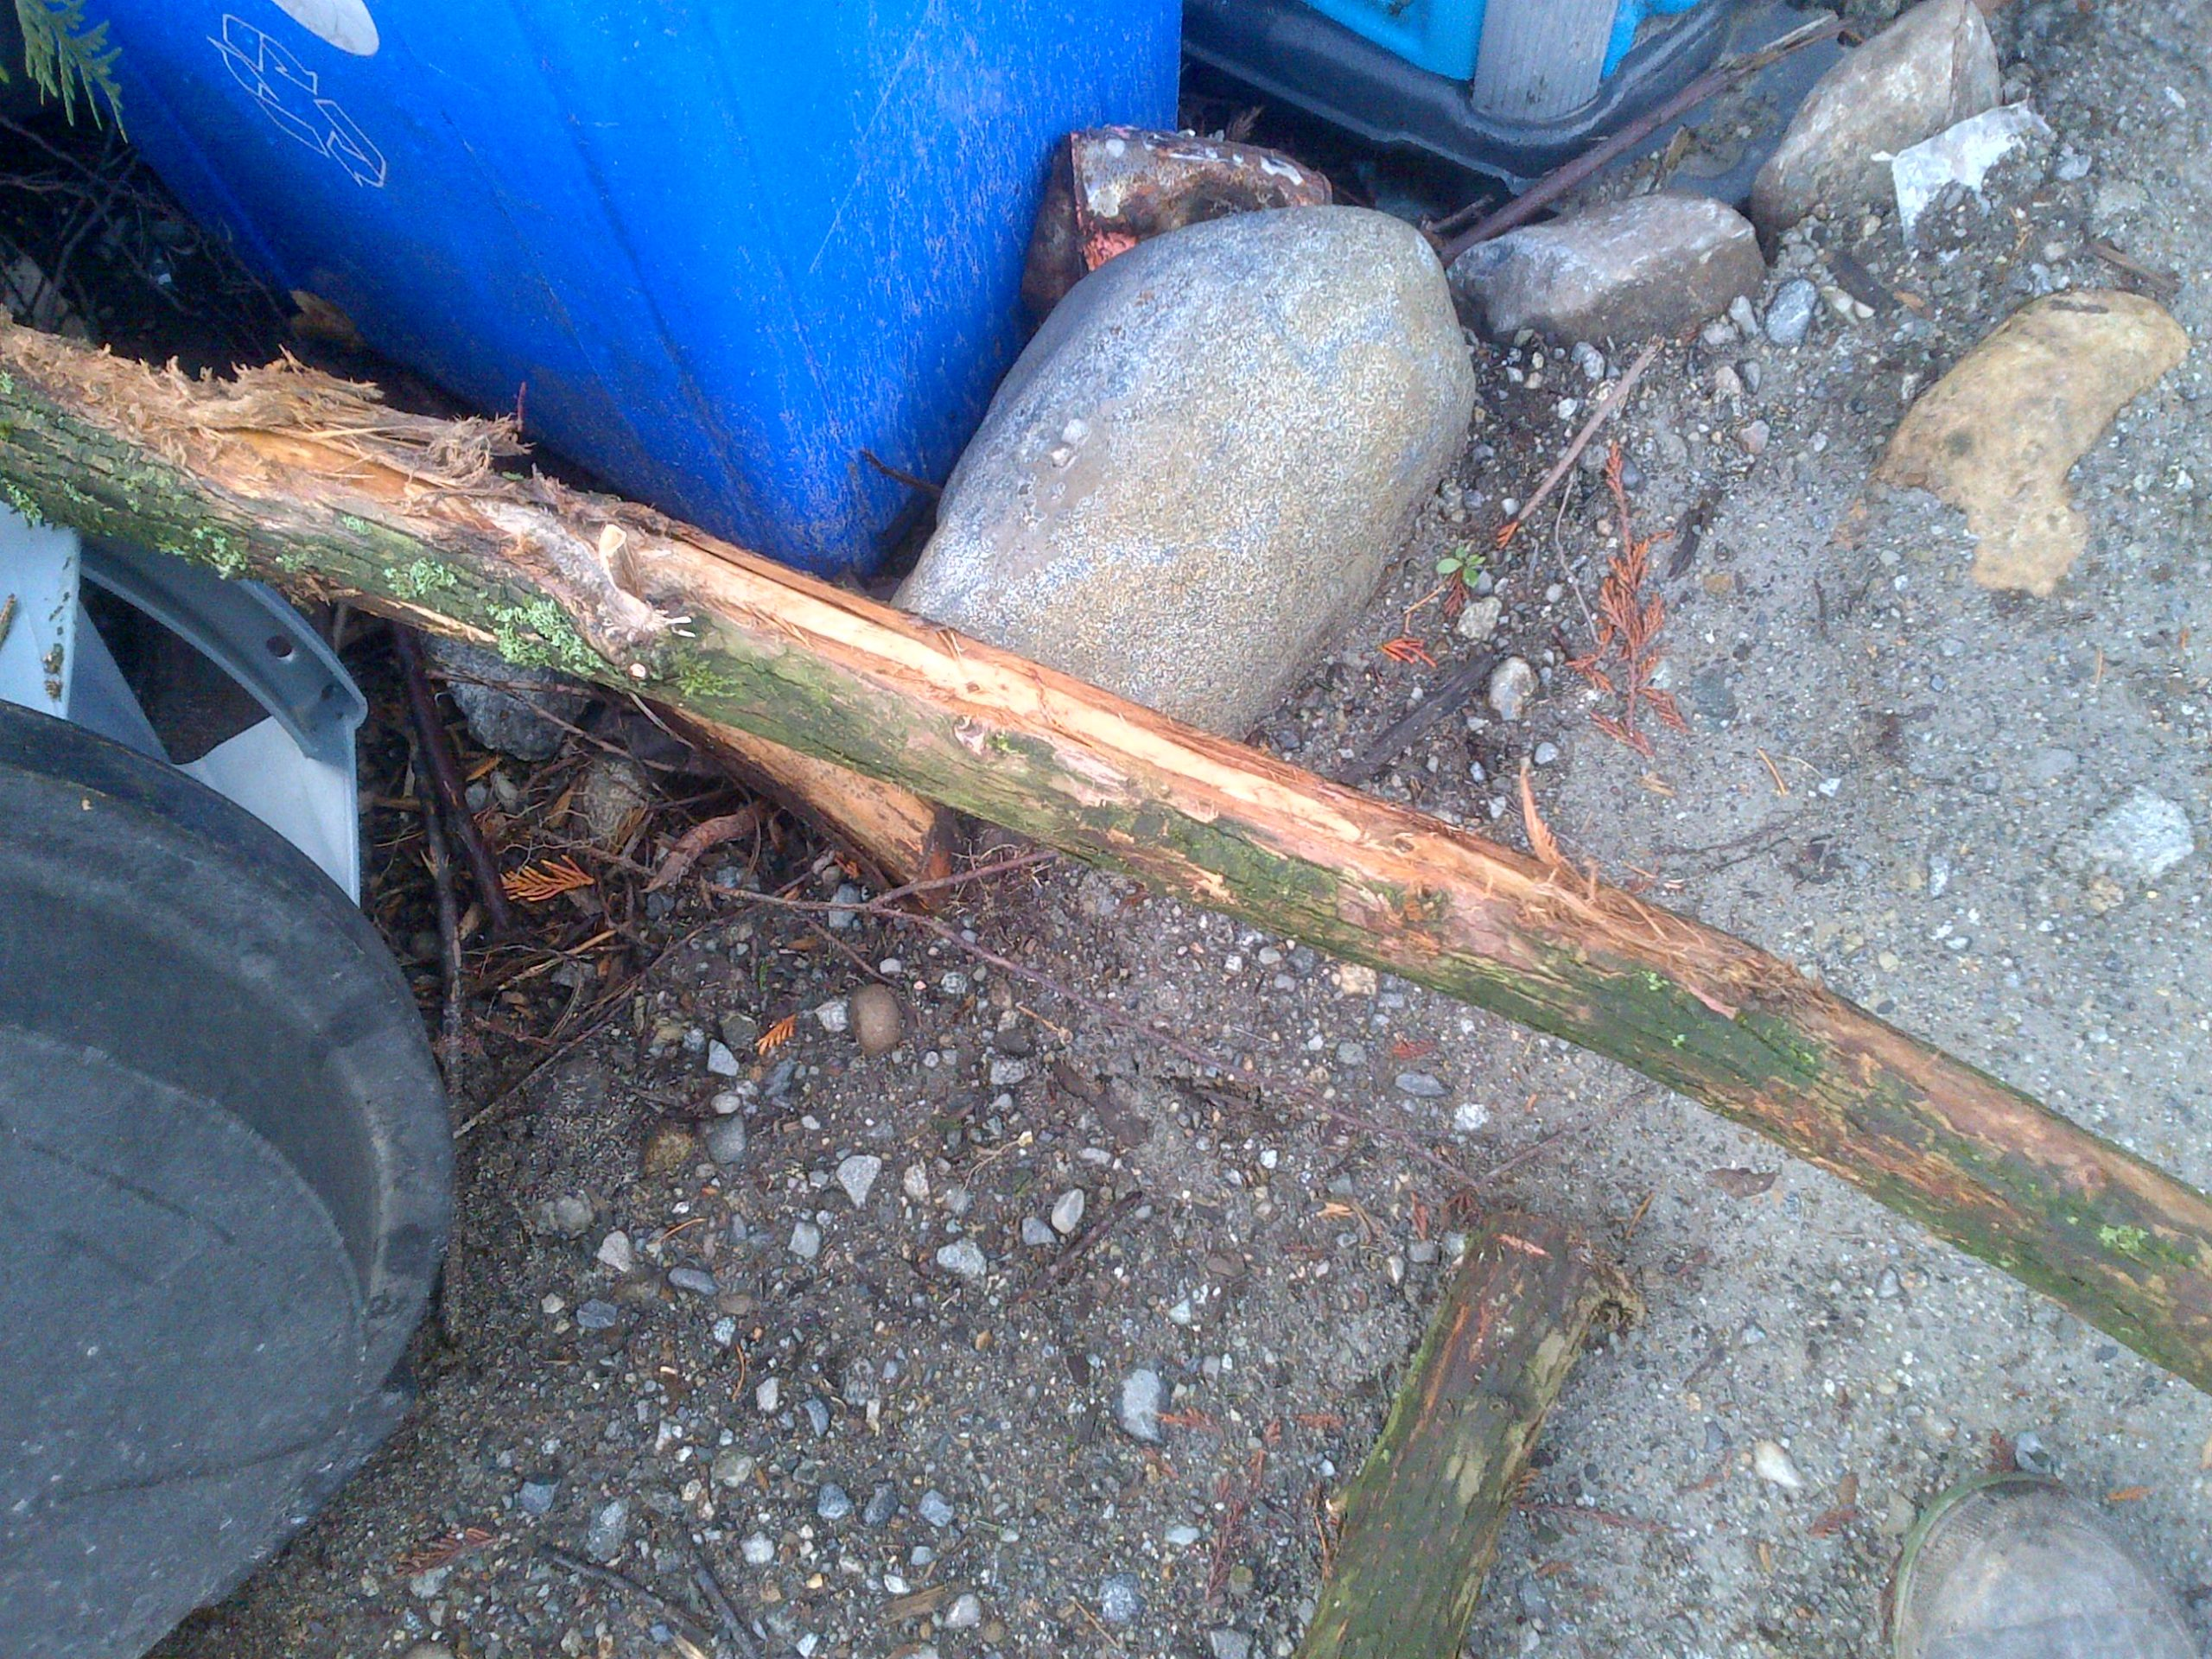 Cable was cutting into branch along its length attributing to huge resistance in cable movement.